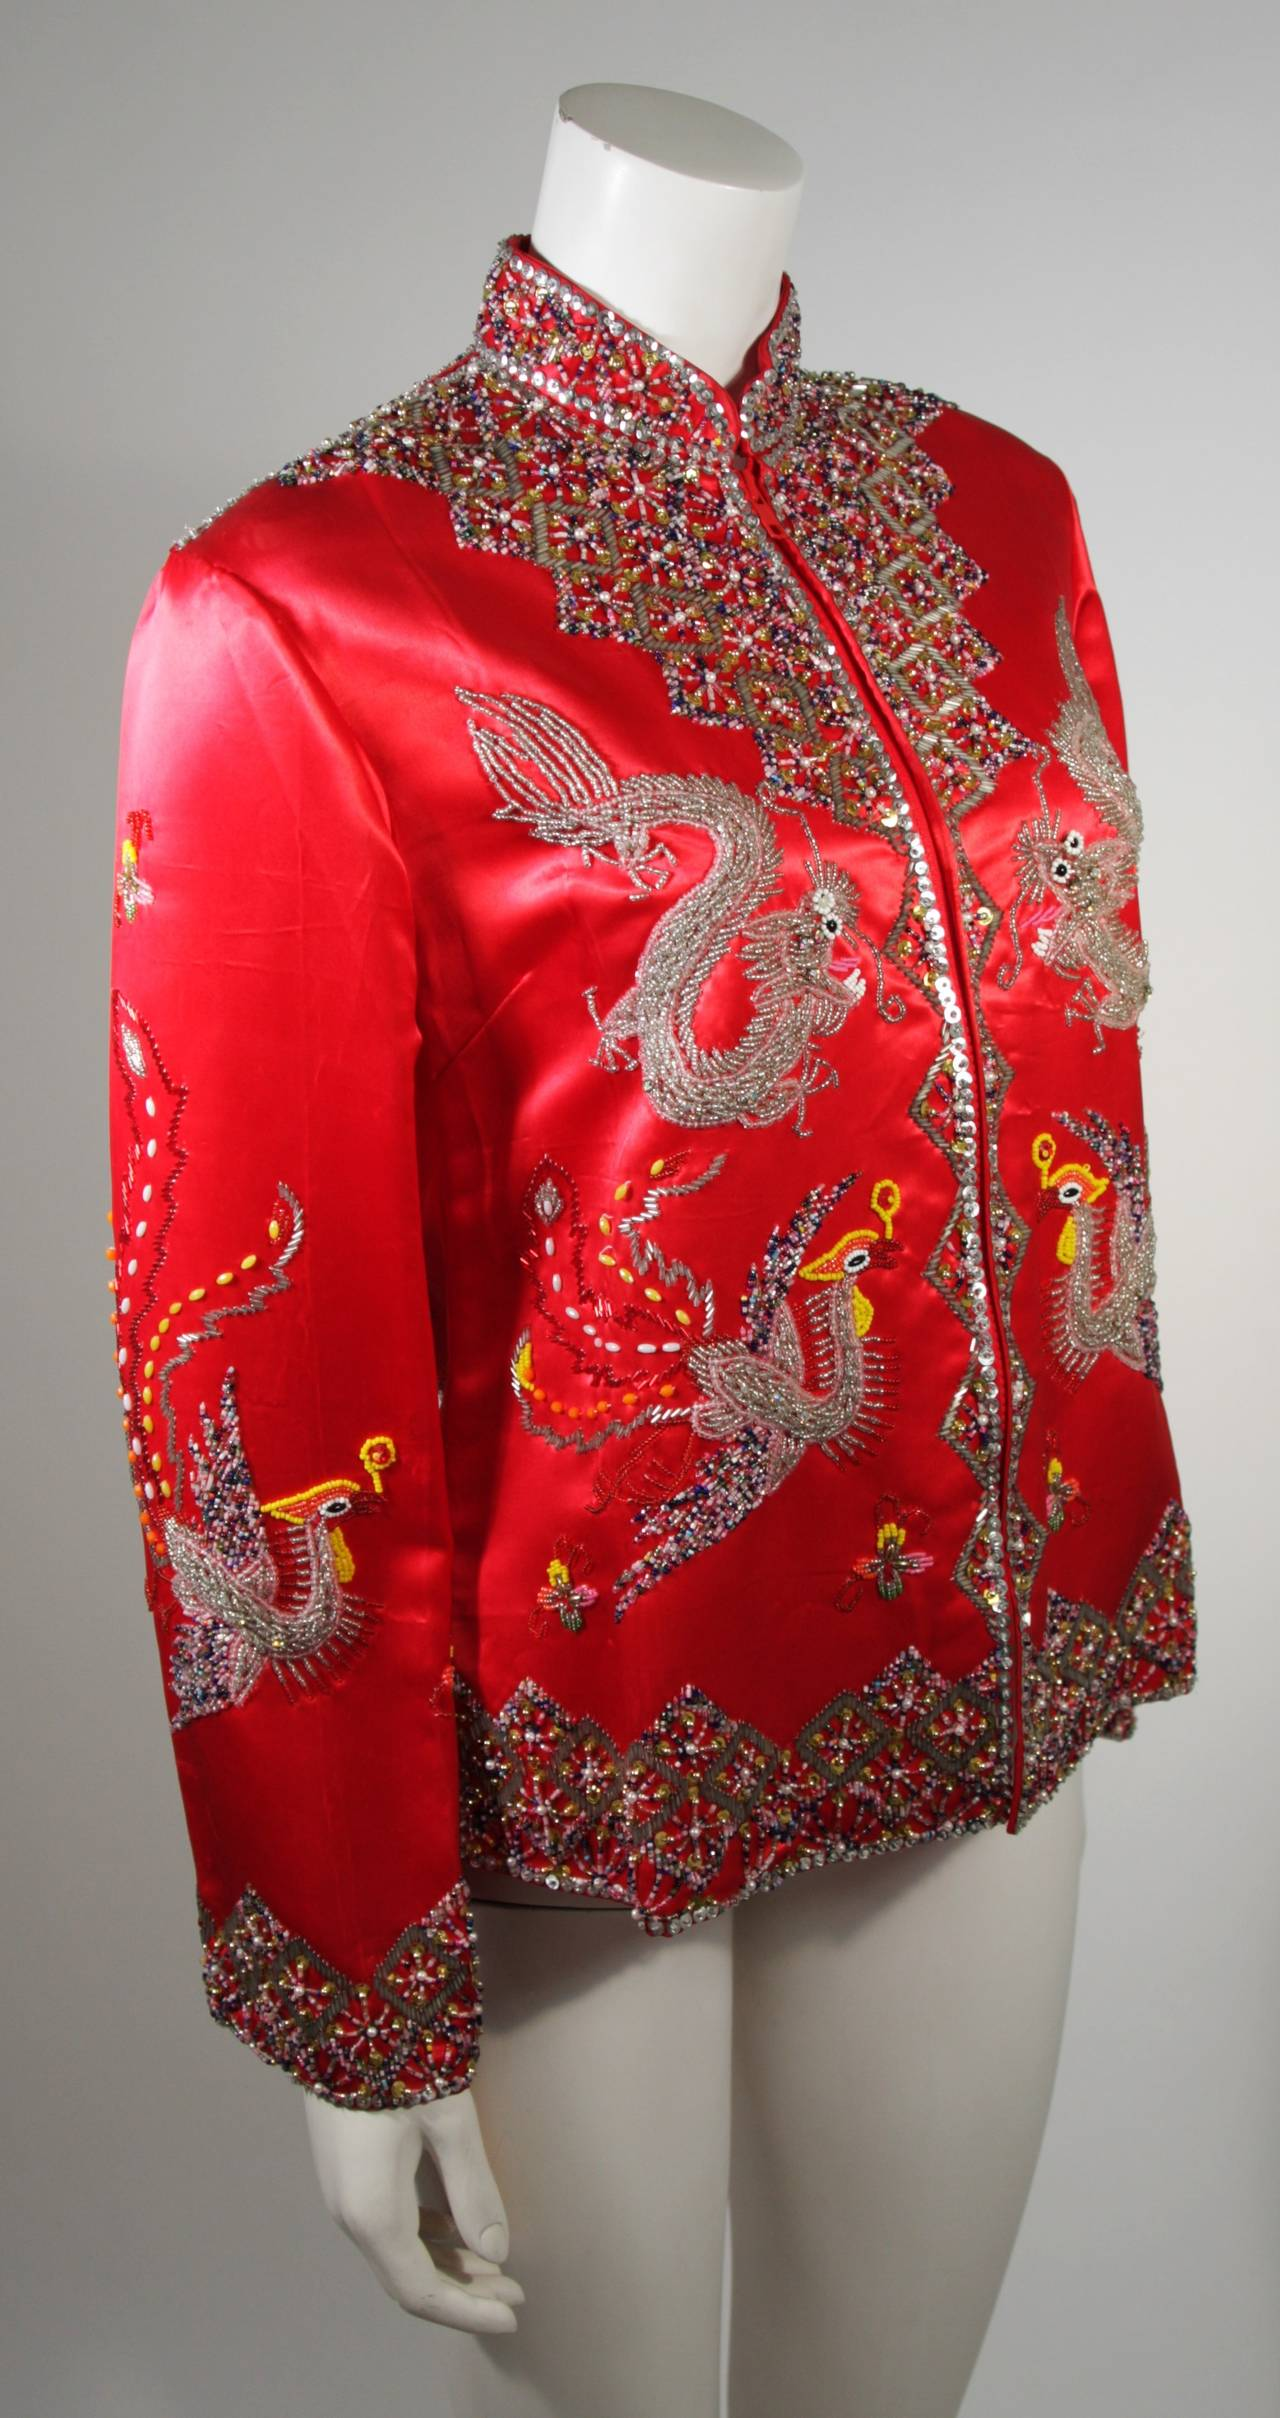 Dynasty For Neiman Marcus Red Silk Hand Beaded Sequined Dragon & Phoenix Jacket In Excellent Condition For Sale In Los Angeles, CA